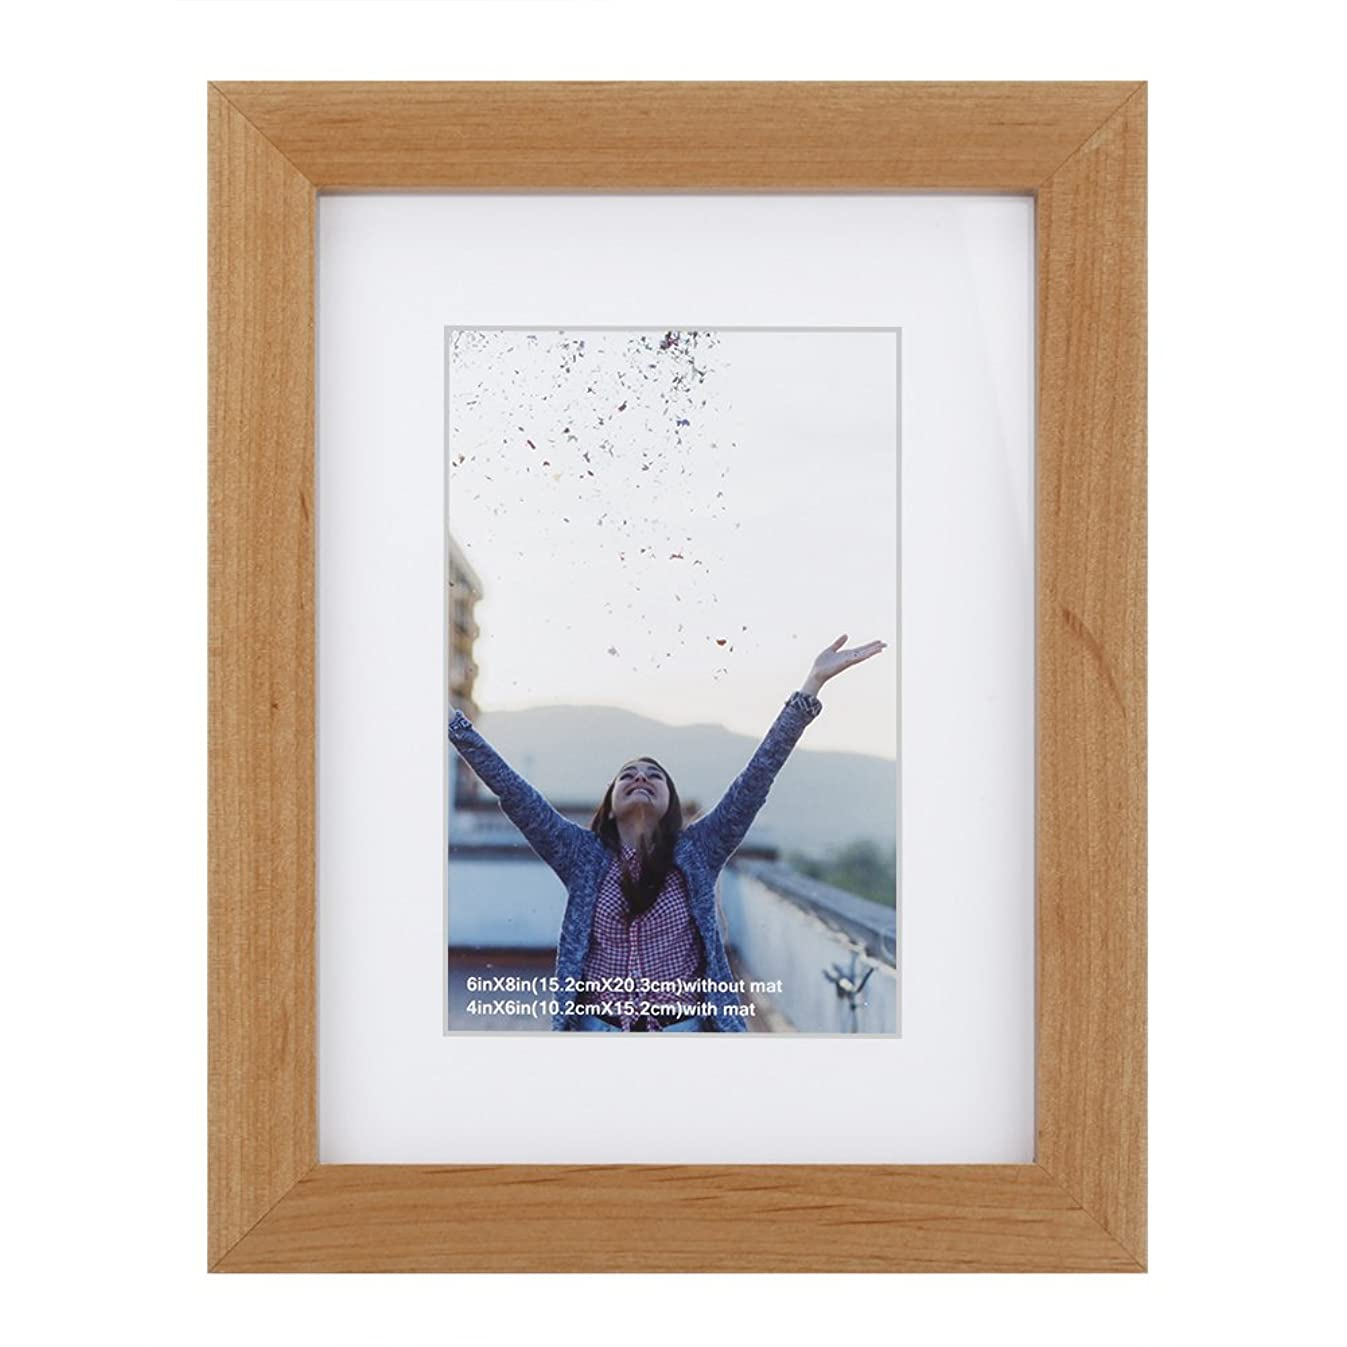 RPJC 6x8 Picture Frames Made of Solid Wood and High Definition Glass Display Pictures 4x6 with Mat or 6x8 Without Mat for Wall Mounting Photo Frame Natural